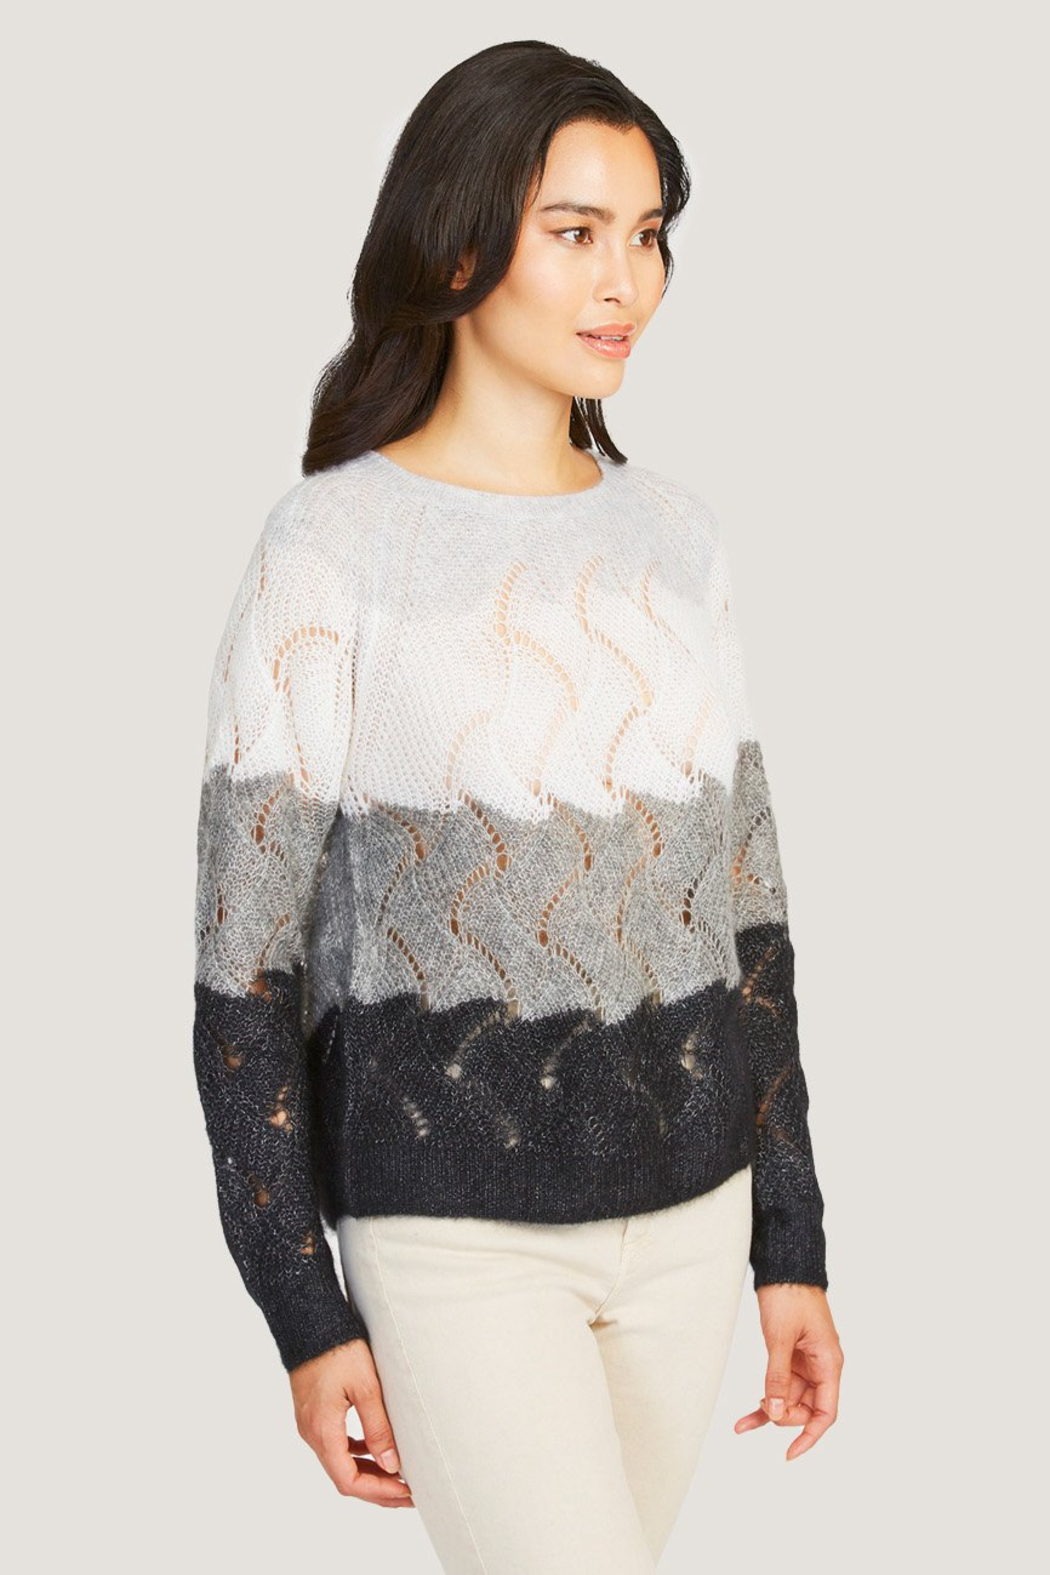 Autumn Cashmere Striped Wave Stitch Sweater - Front Full Image